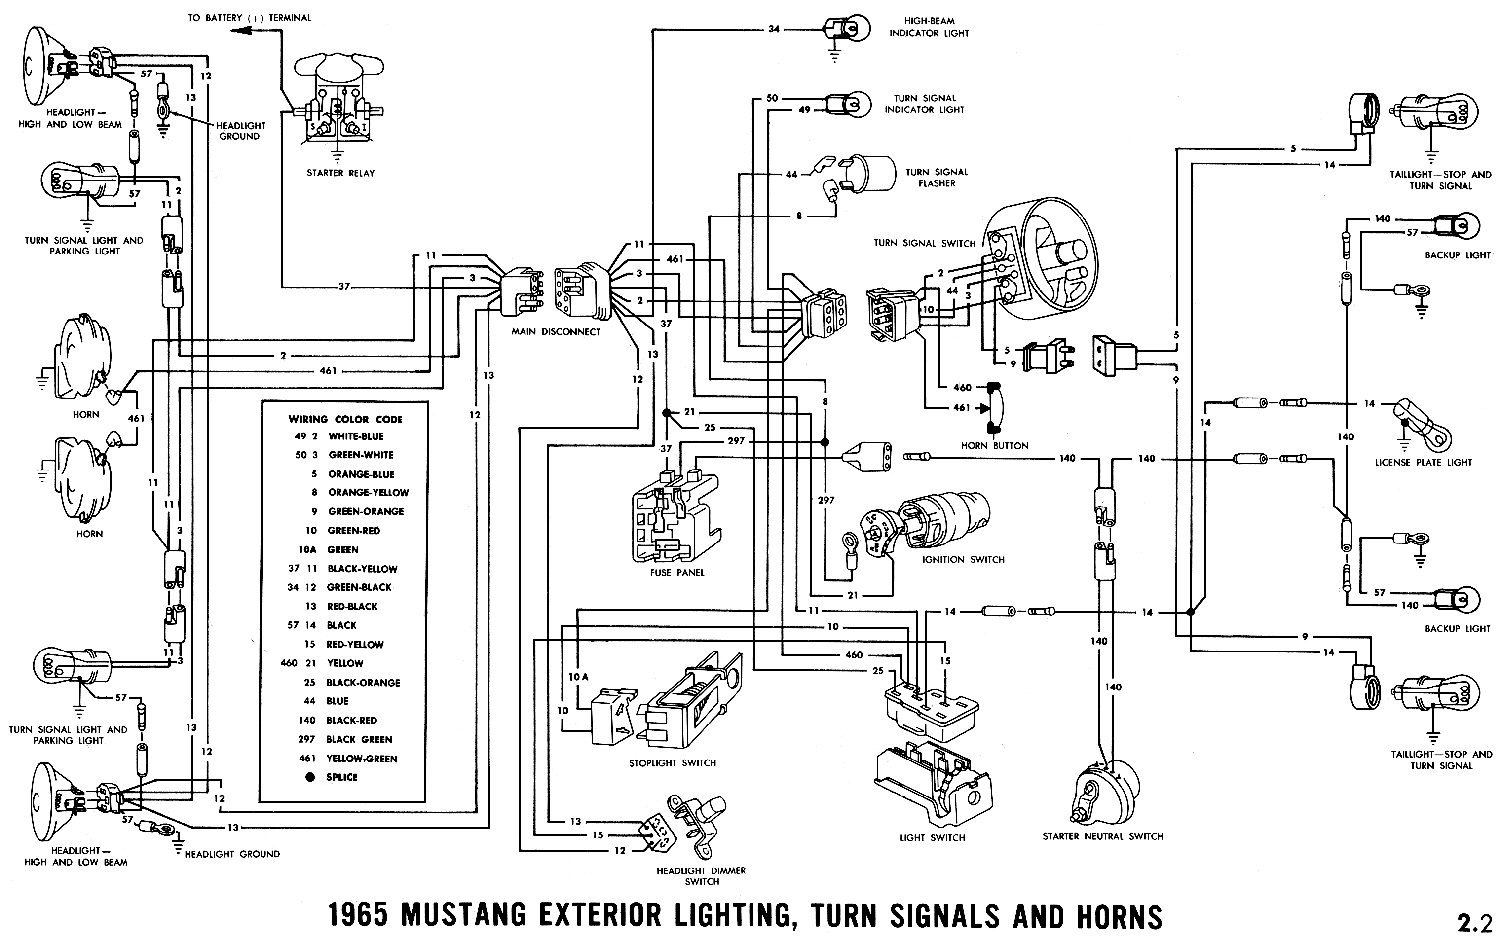 What To Do With Neutral Position Switch Now Ford Mustang Forum Wiring Diagram Click Image For Larger Version Name 1965 Exterior Views 29 Size